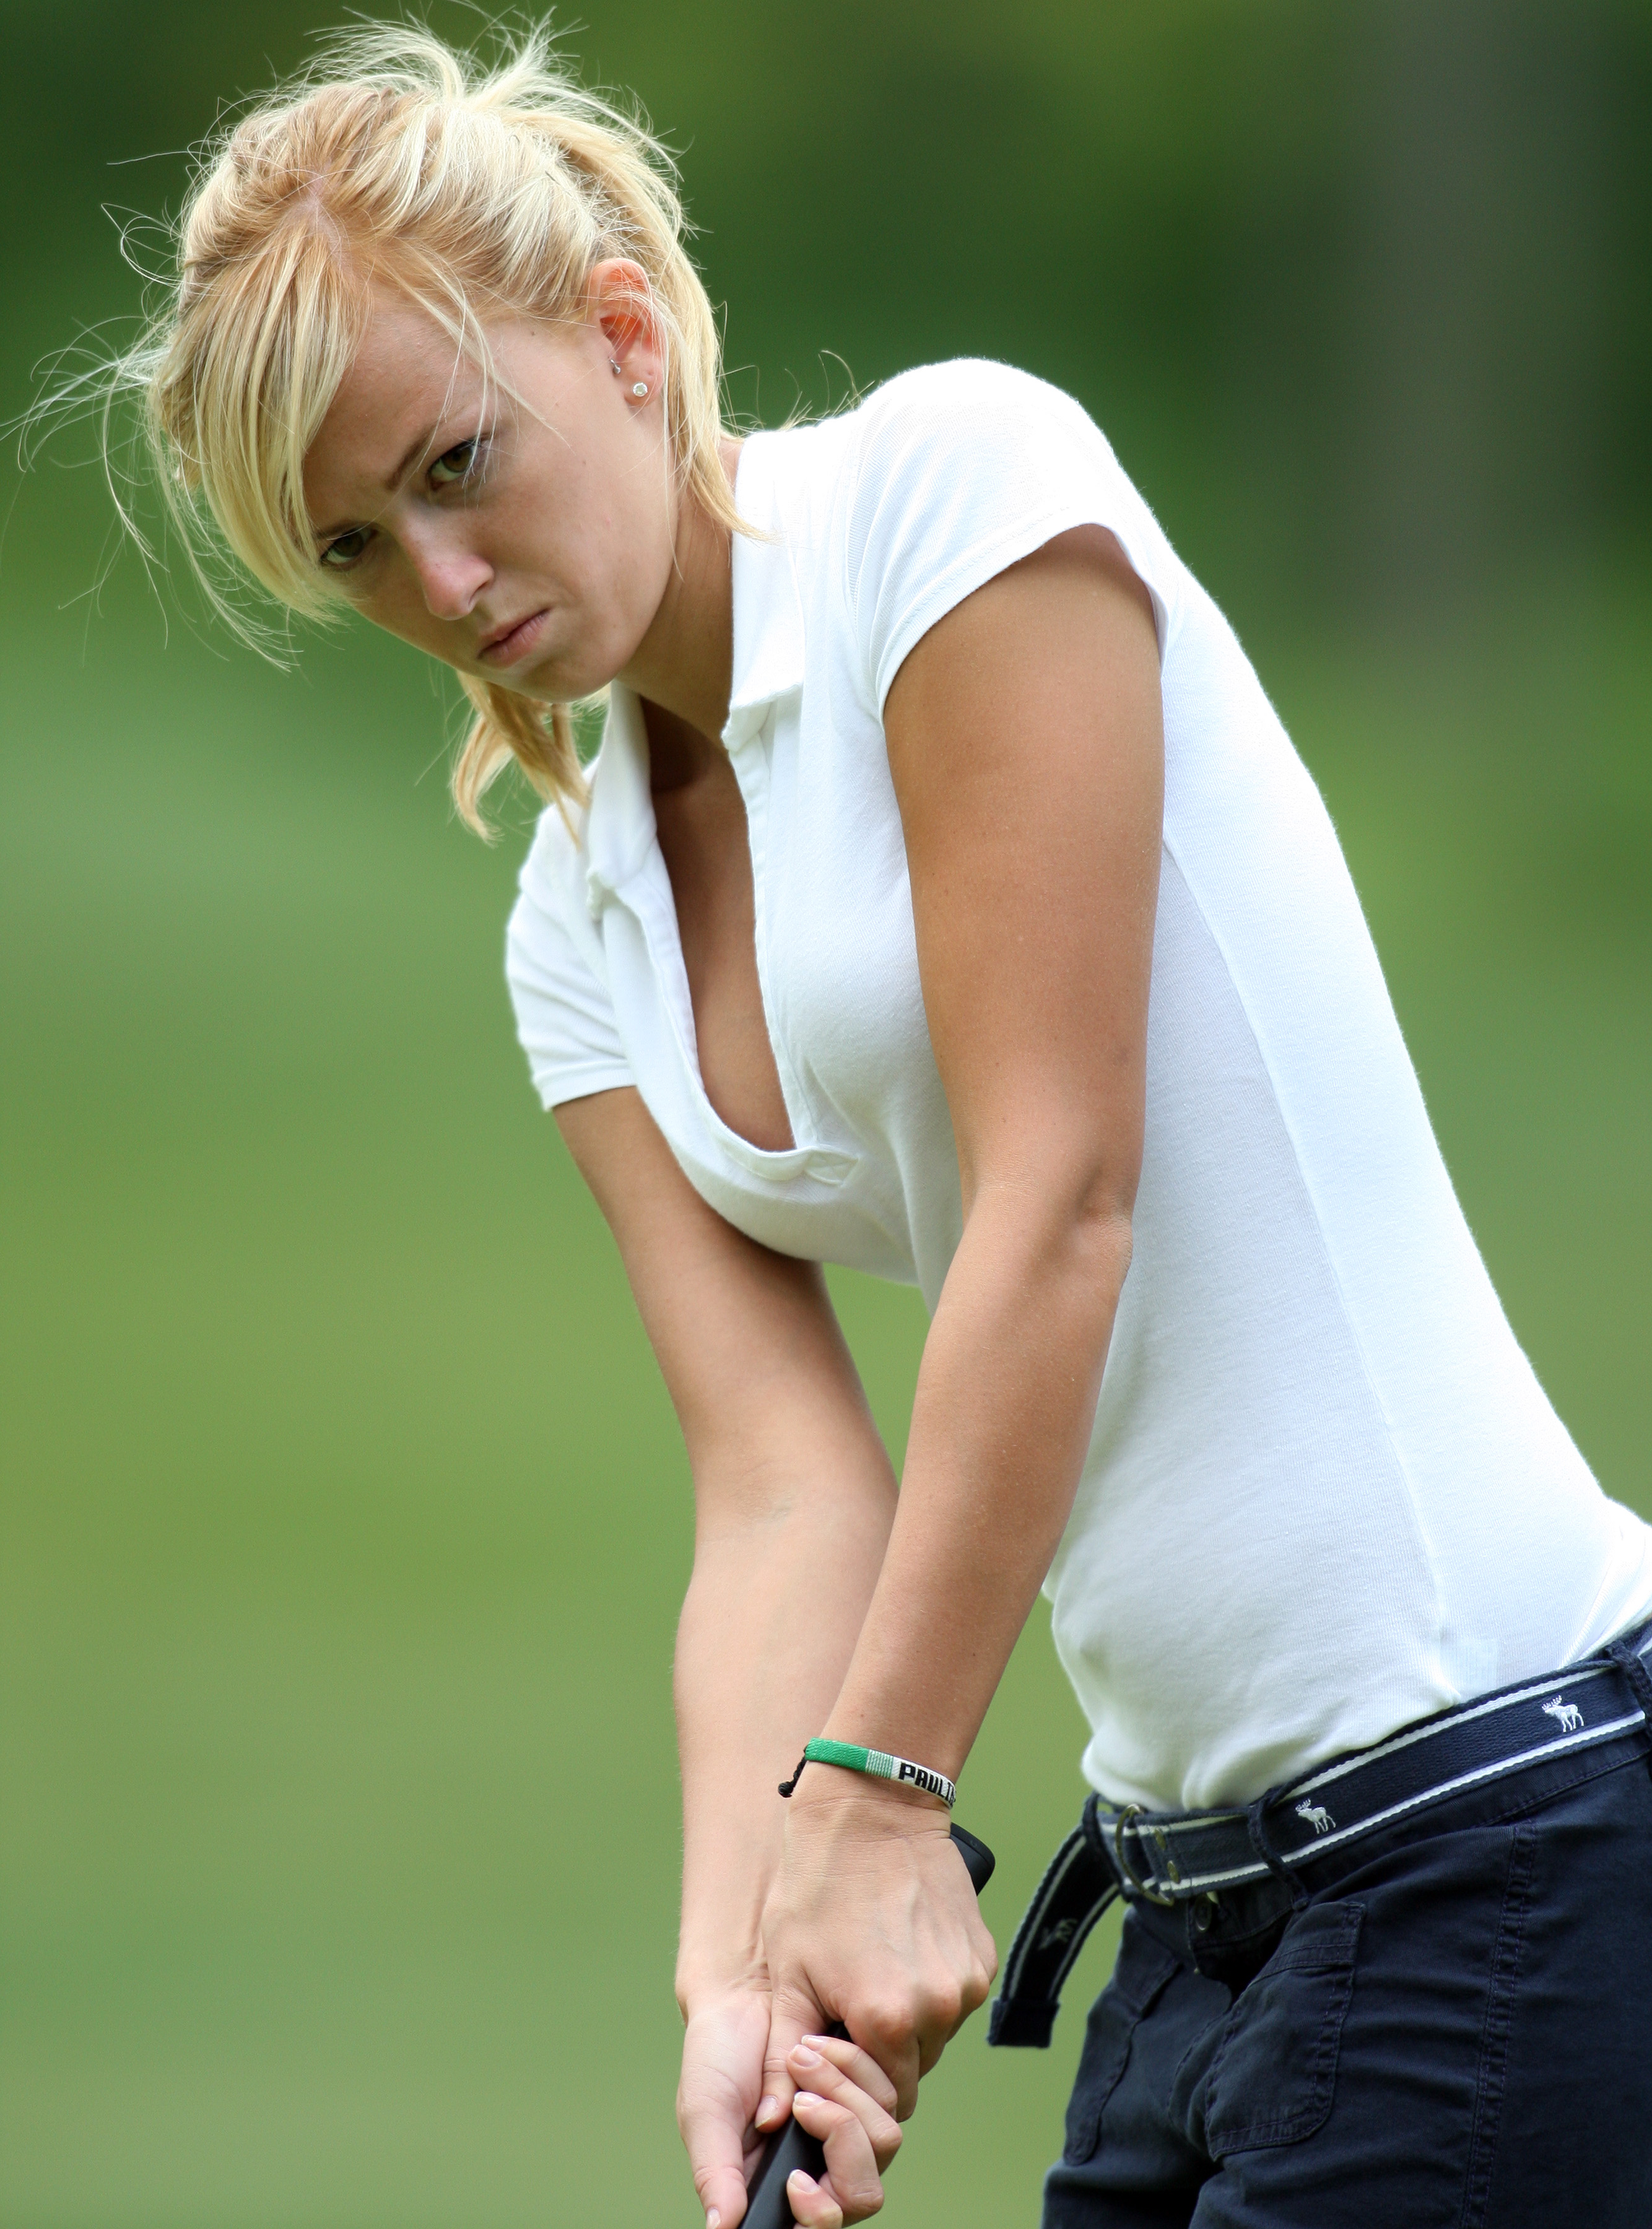 CLARKSBURG, ON - JUNE 26:  Paulina Gretzky plays in the first round of the Ford Wayne Gretzky Classic on June 26, 2008 in Clarksburg, Ontario.  (Photo by Claus Andersen/Getty Images)